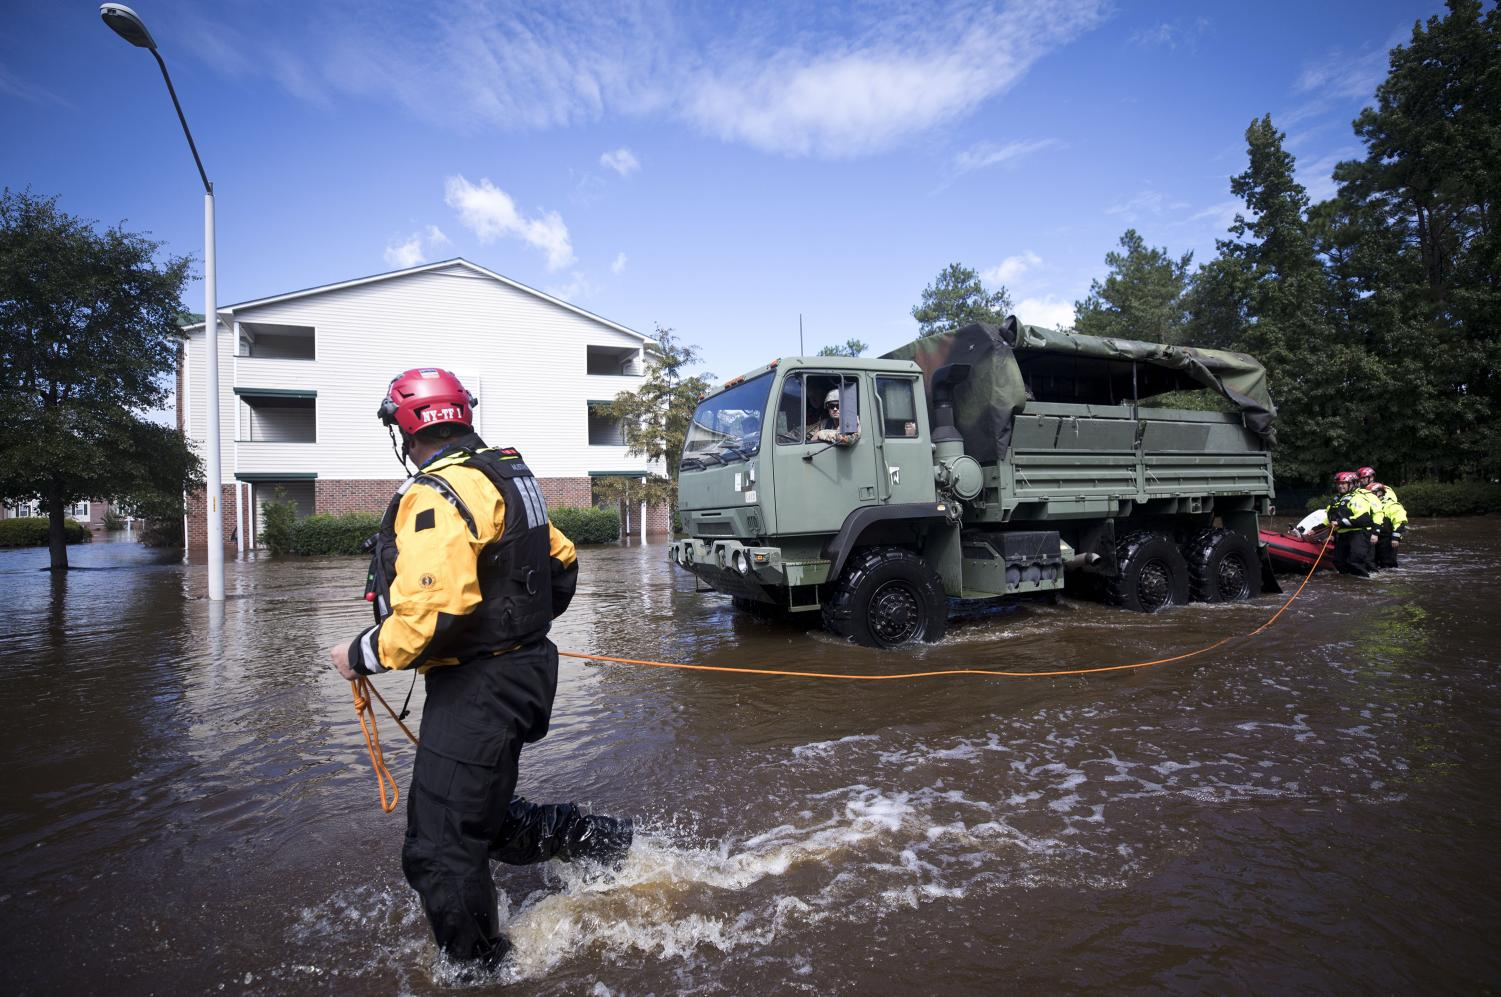 New York Urban Search and Rescue team members, along with members of the N.C. Army National Guard, prepare to evacuate residents at the Heritage at Fort Bragg Apartments in Spring Lake, N.C., Tuesday Sept. 18, 2018. (Julia Wall/Raleigh News & Observer/TNS)